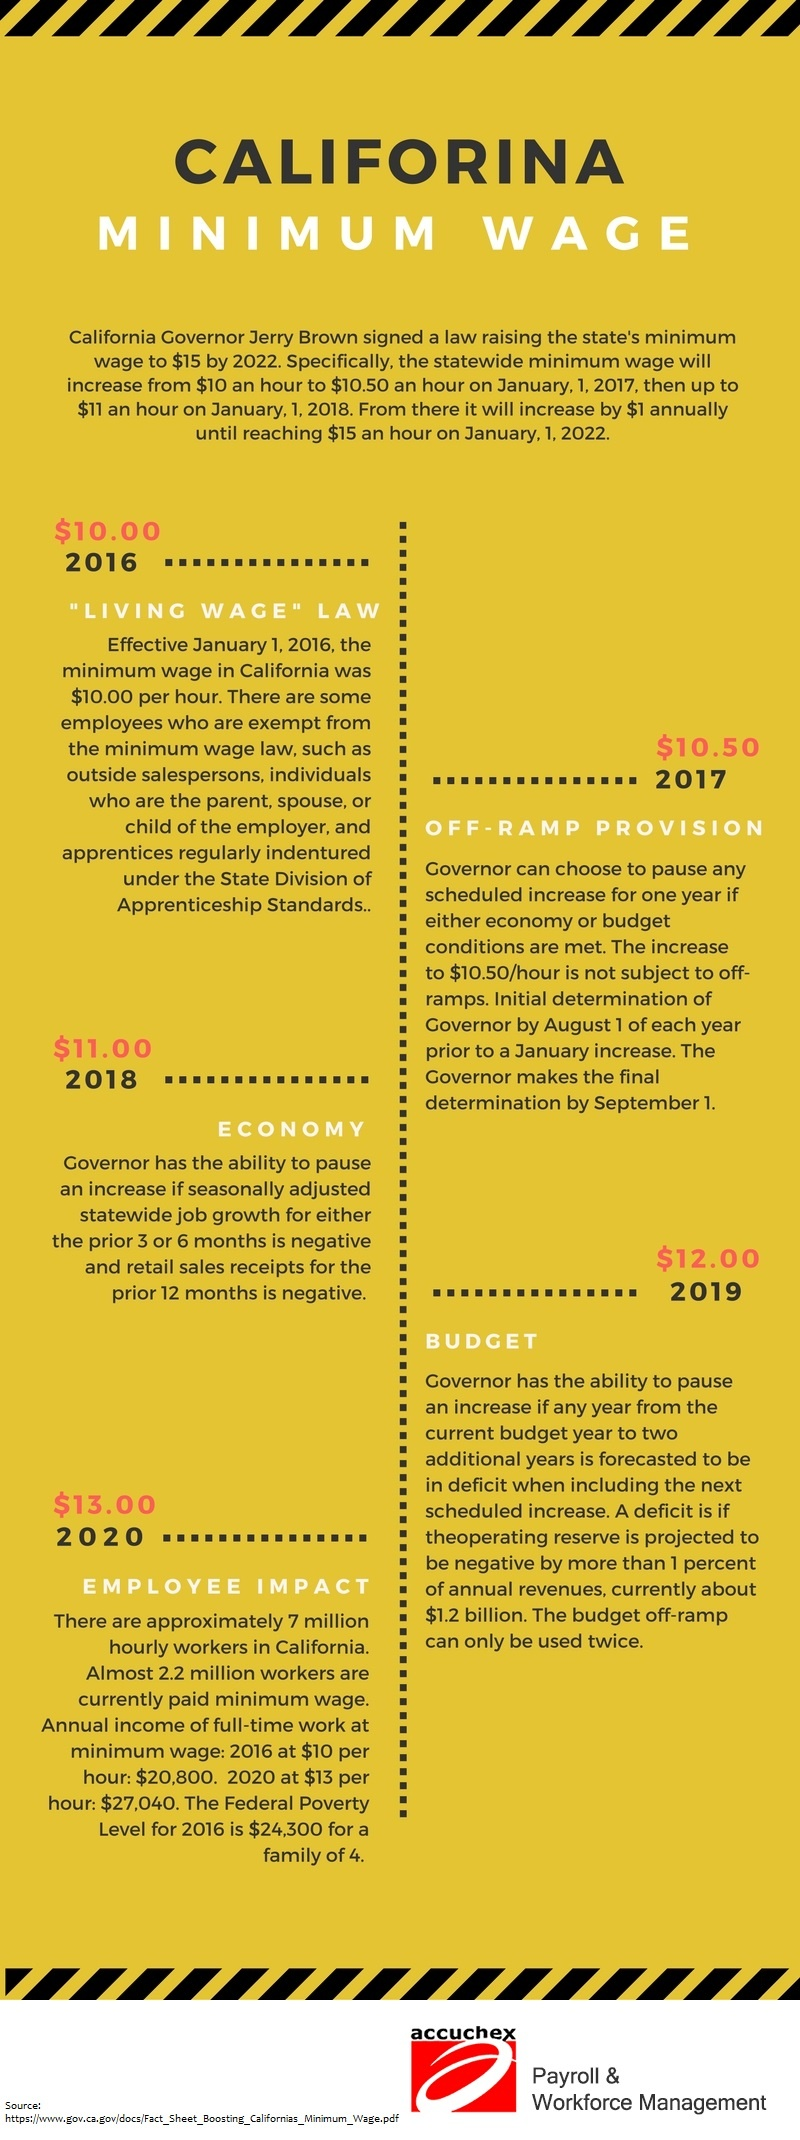 california-labor-law-reminder-for-2017-minimum-wage-increases-infographic